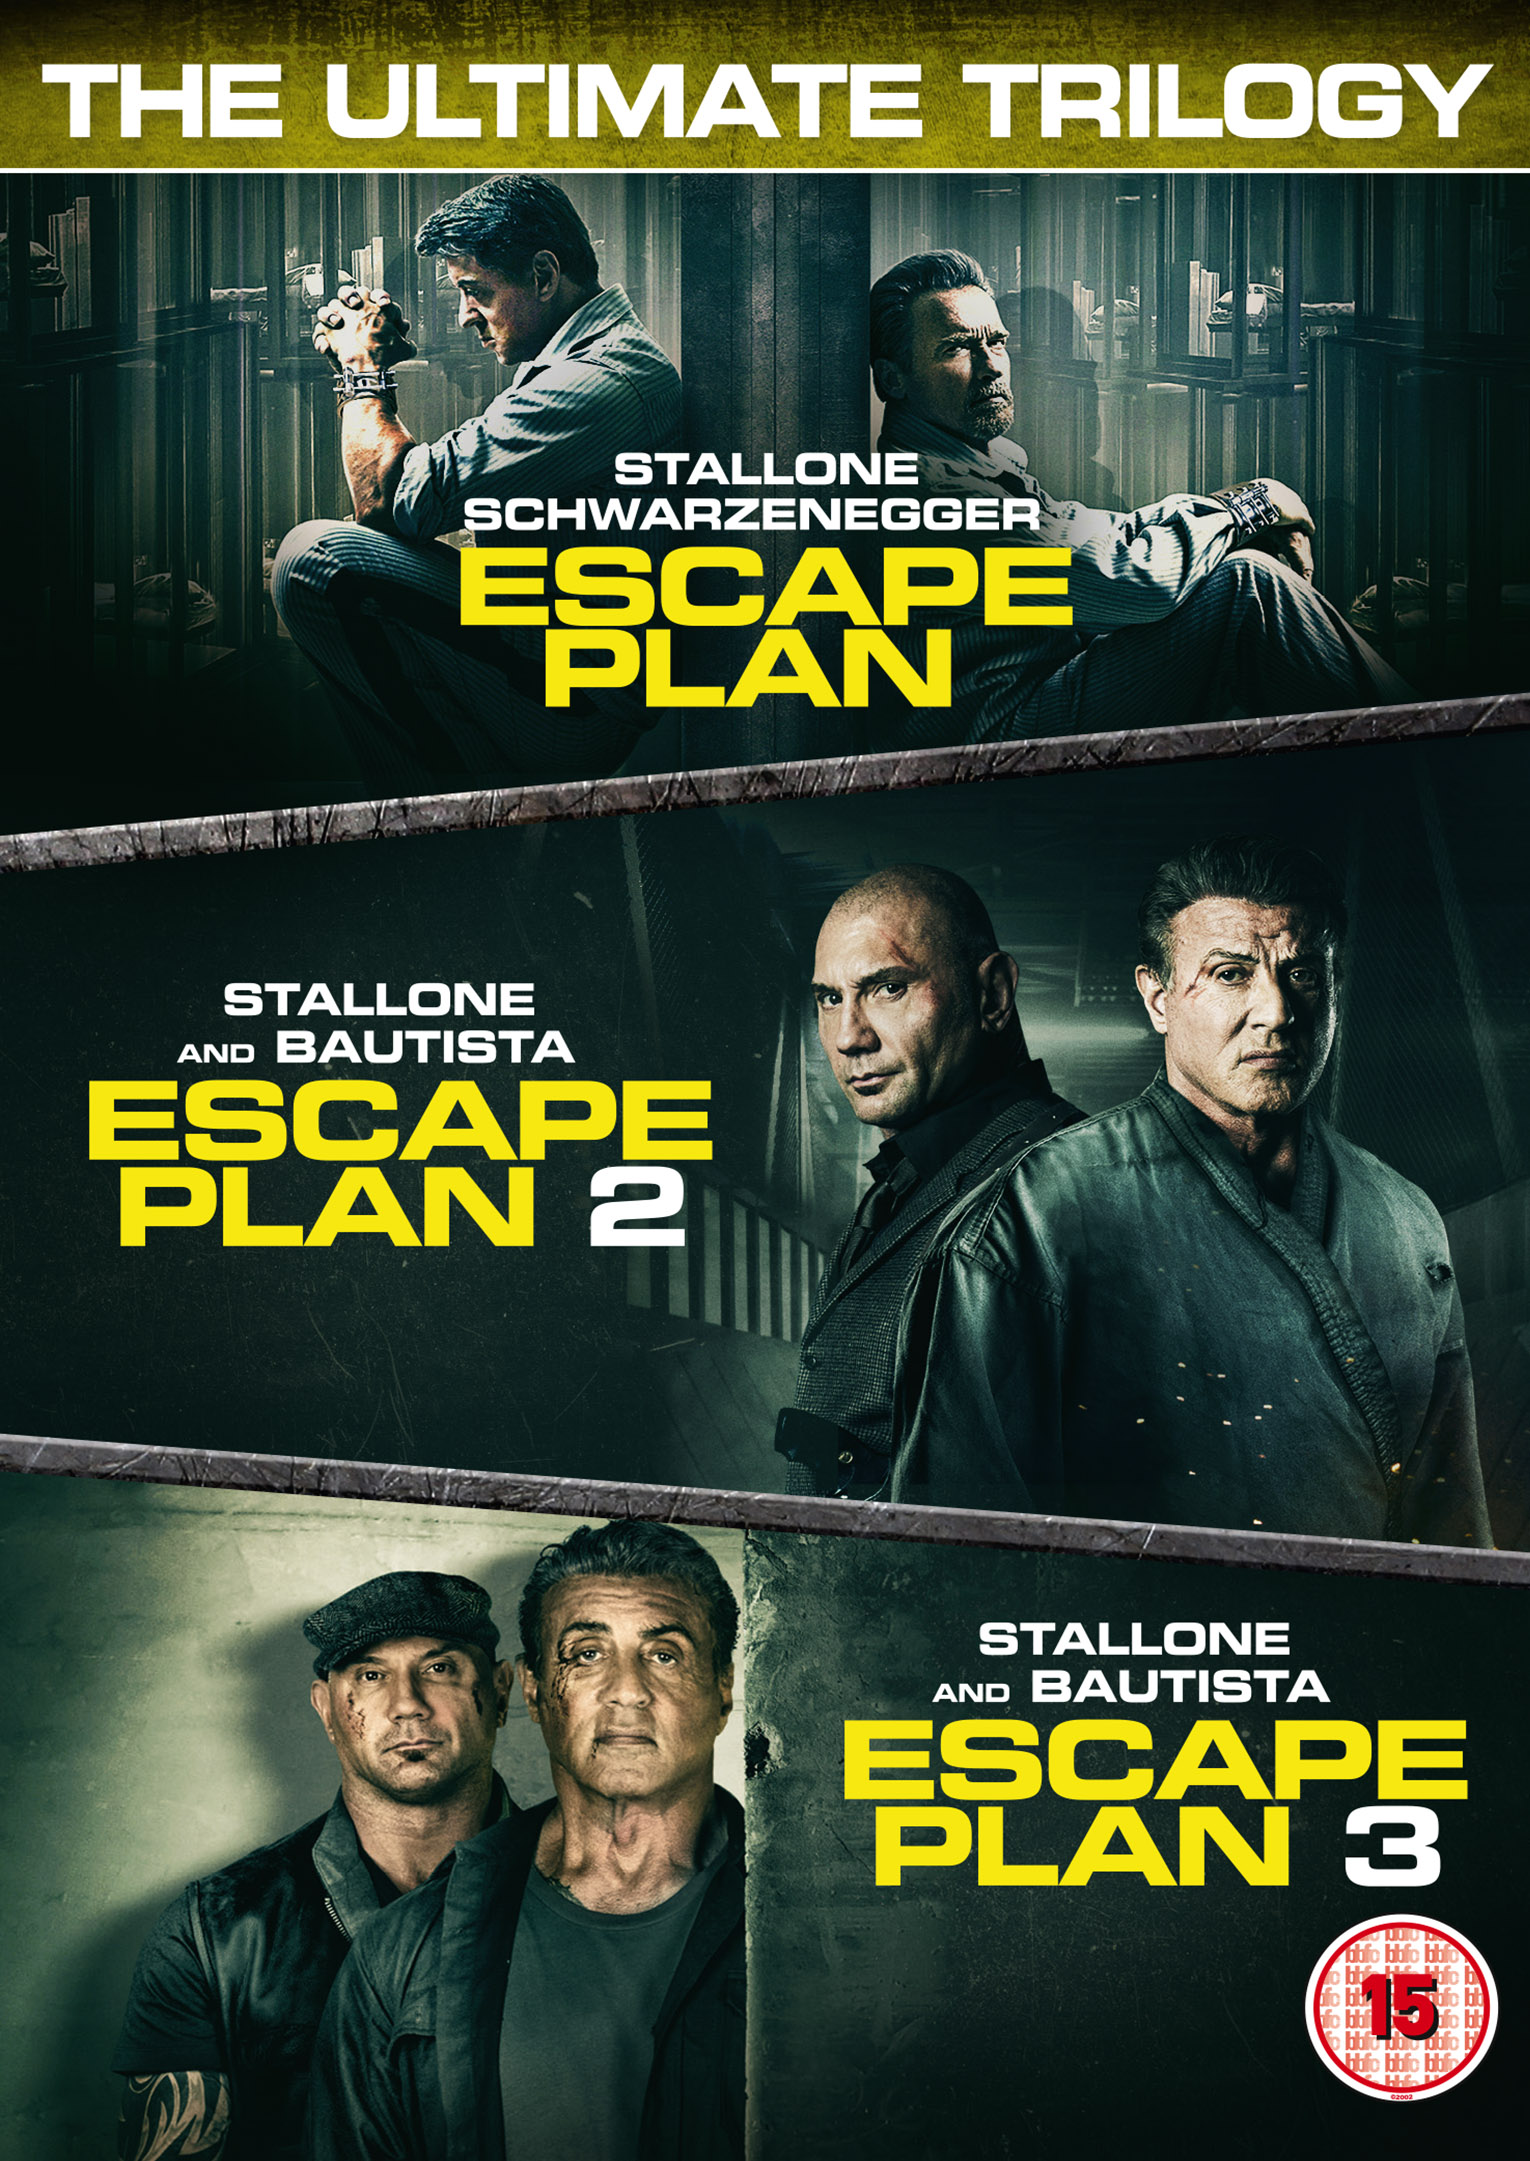 ESCAPE PLAN 3 on Blu-ray, DVD, Digital Download & in a Trilogy Boxset 26th August from Signature Entertainment